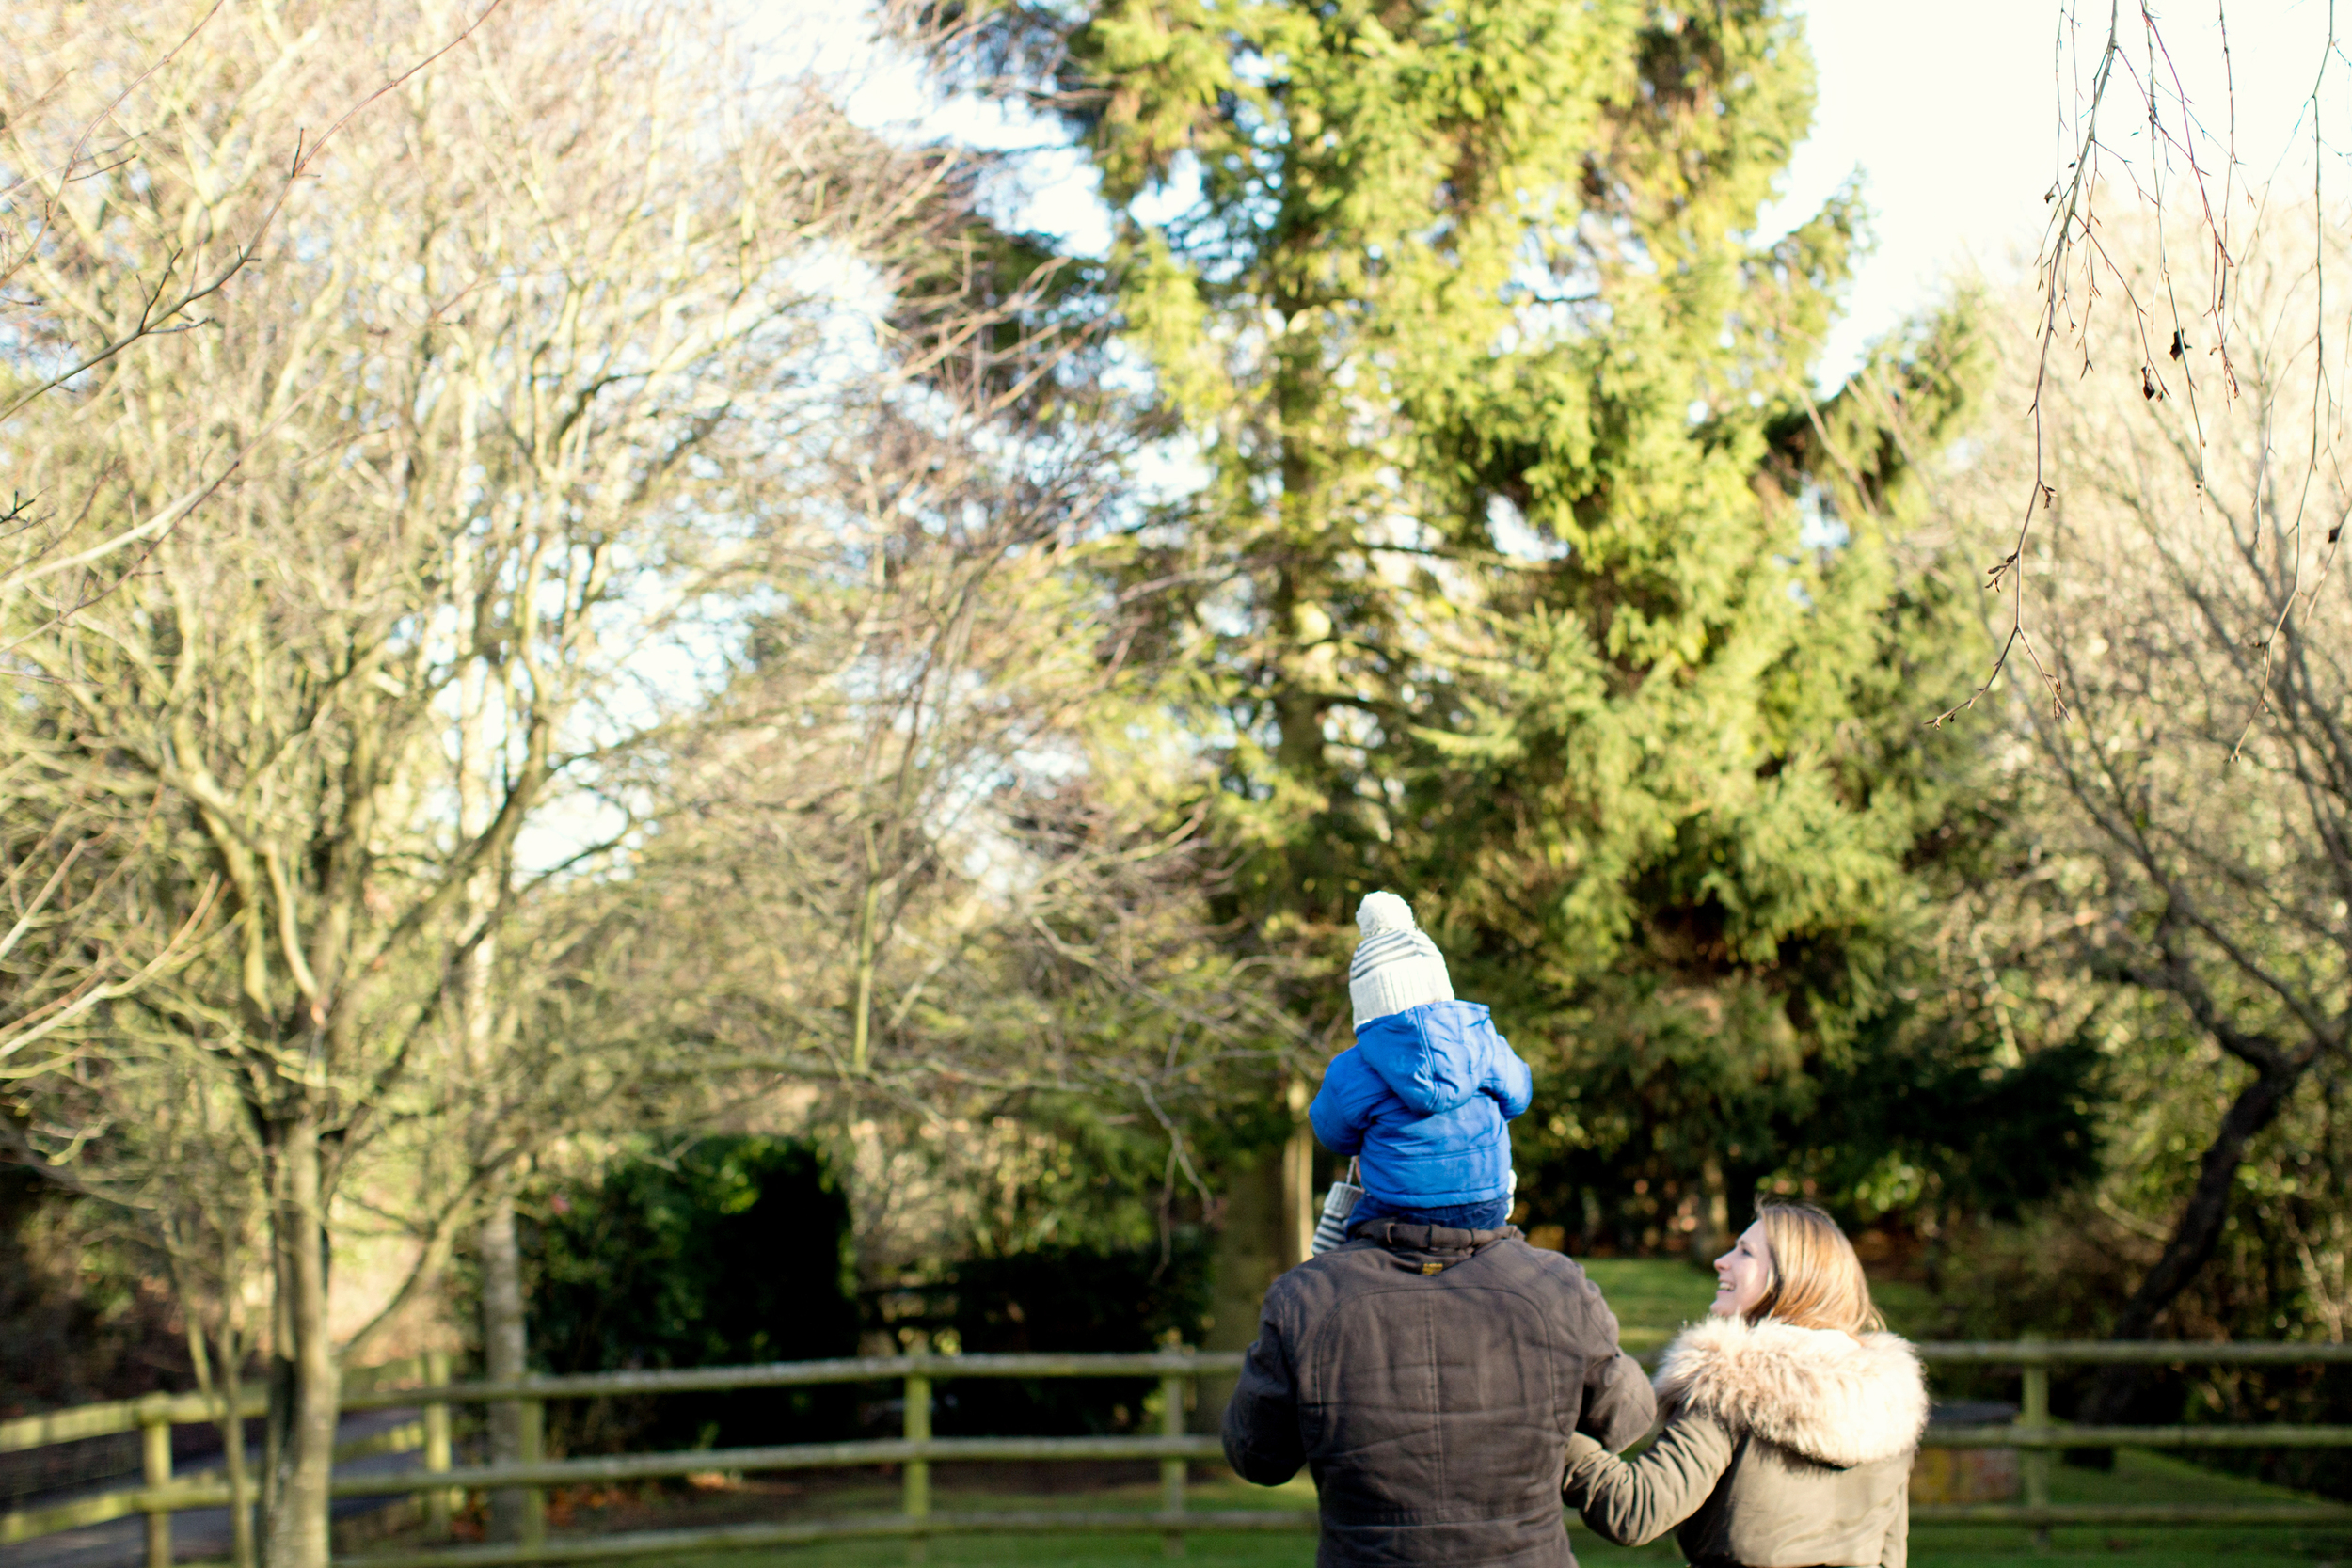 Lisa, Will & Louis_Sophie Evans photograpy, At home family shoot_149.jpg